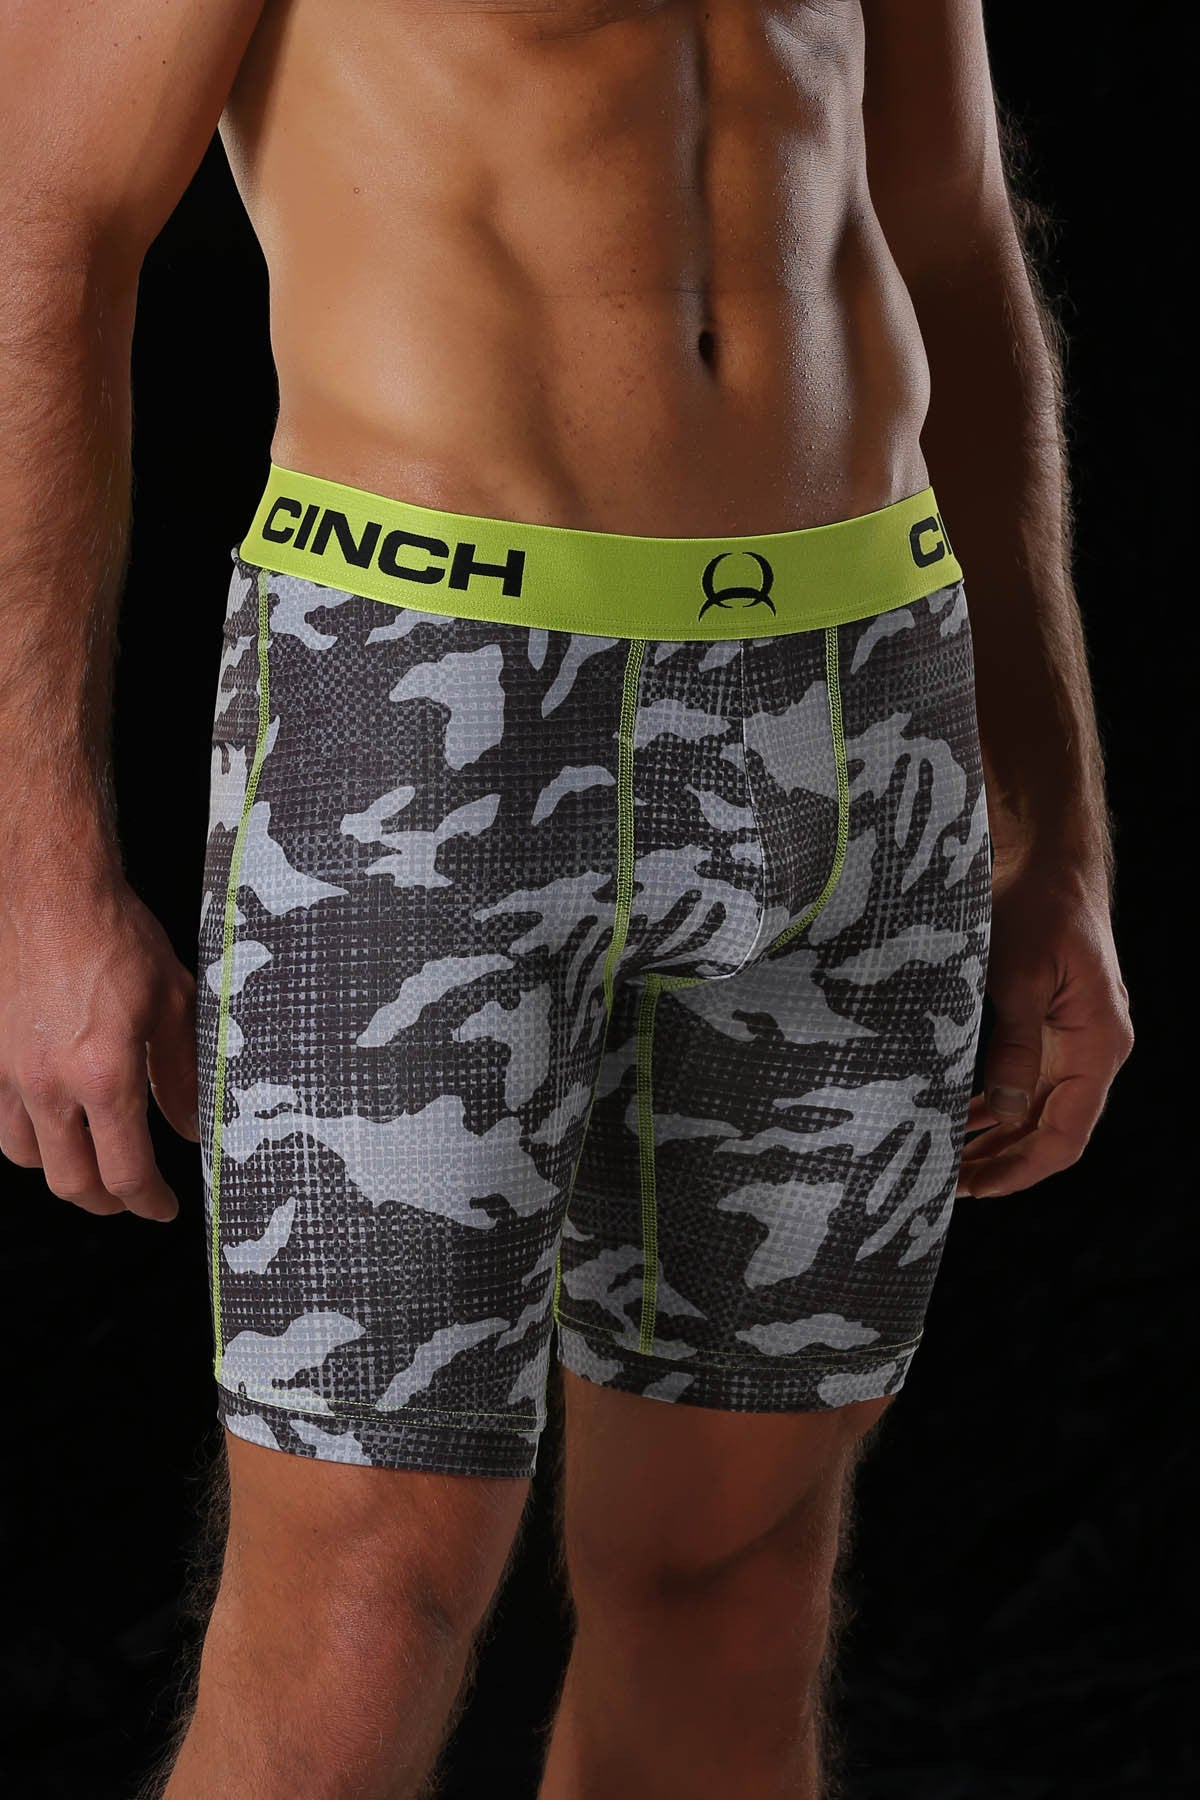 "Cinch 9"" Black Men's Boxers"